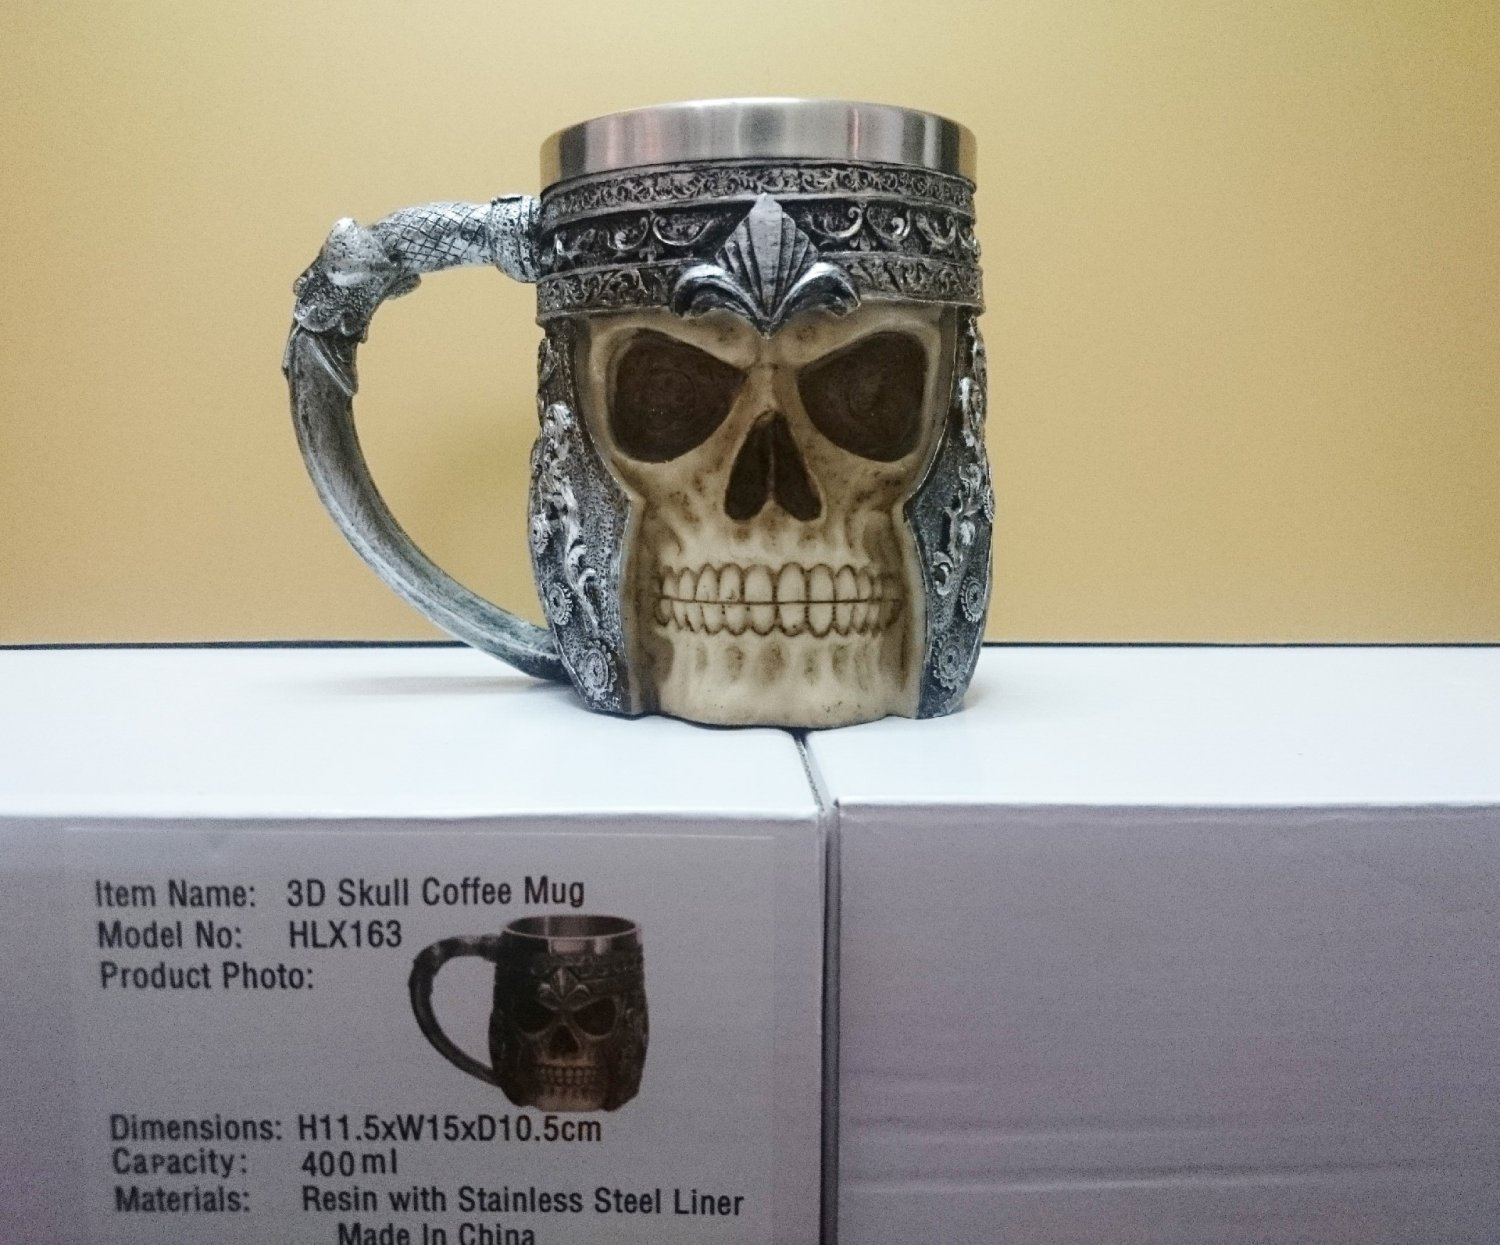 Collectibles 3D Skull Viking Beer Mug Scary Cool Resin Stainless Steel Cups Home Office Decor gift